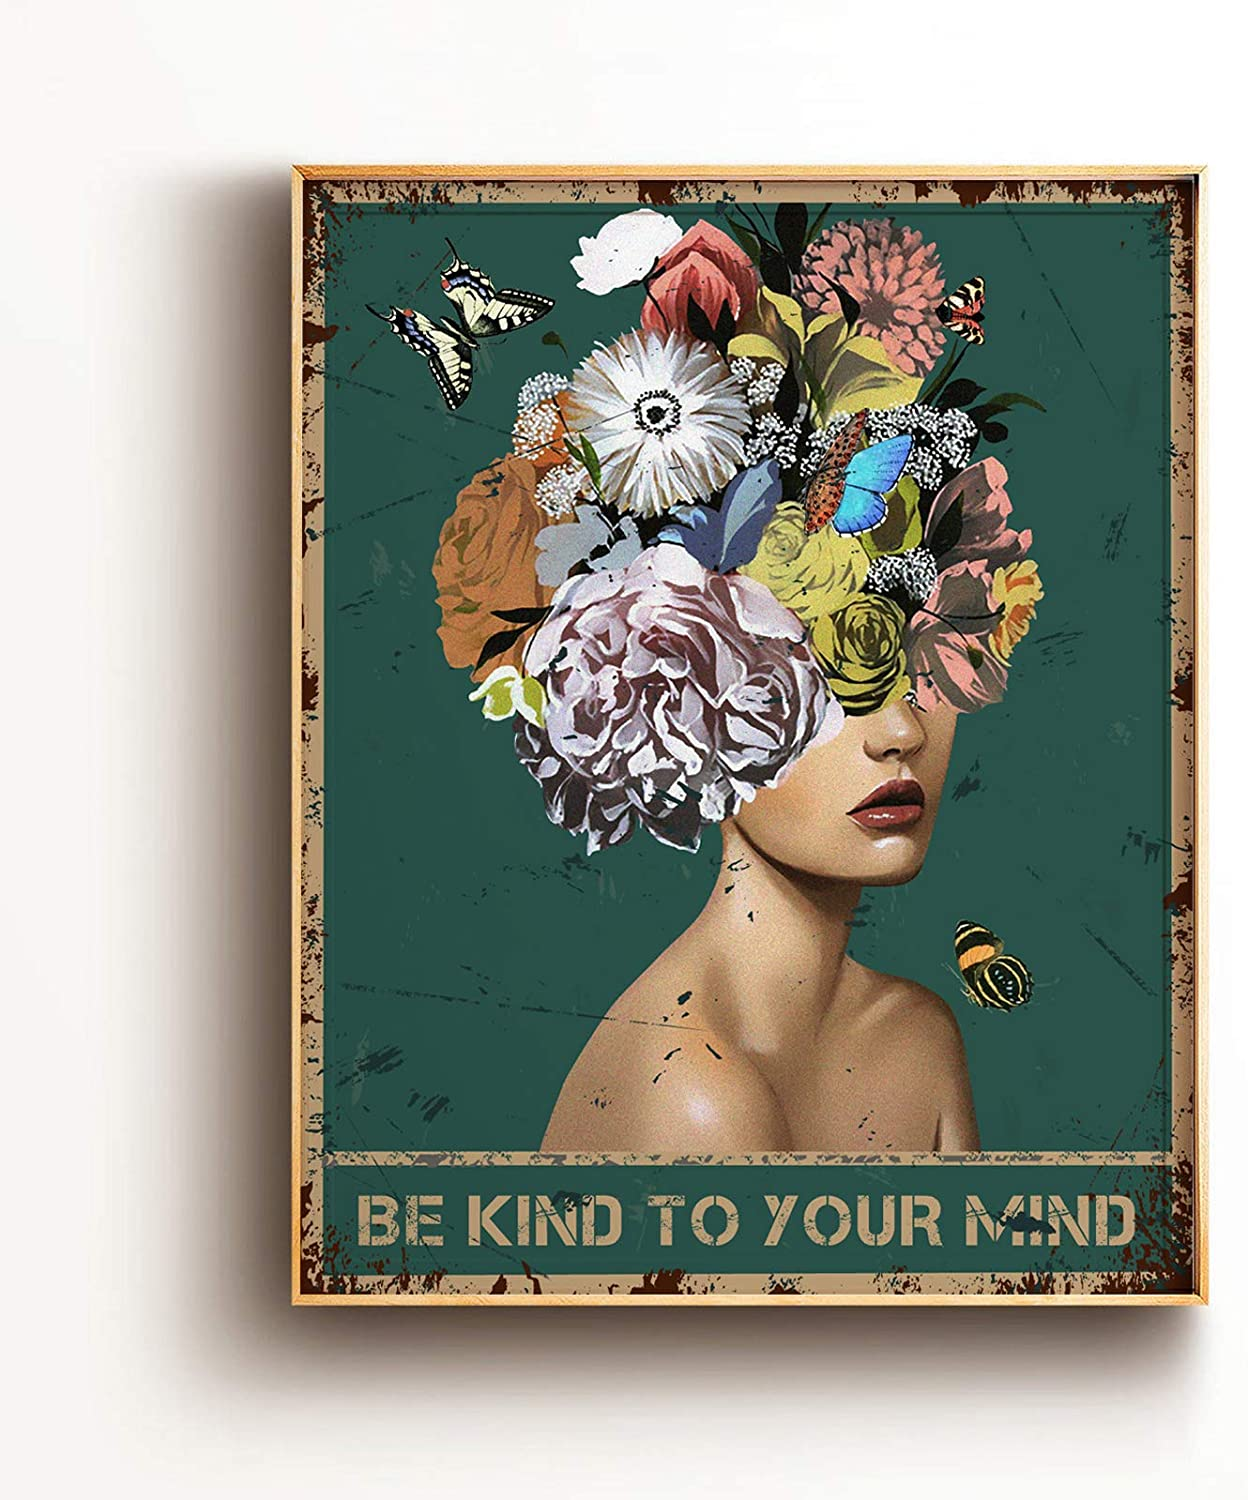 Inspirational Quote Wall Art Print Poster Decor - Be Kind To Your Mind Flower Vintage Poster for Office/Home/Classroom Decor - Best Birthday/Thanksgiving/Christmas Ideas - 8x10 Unframed